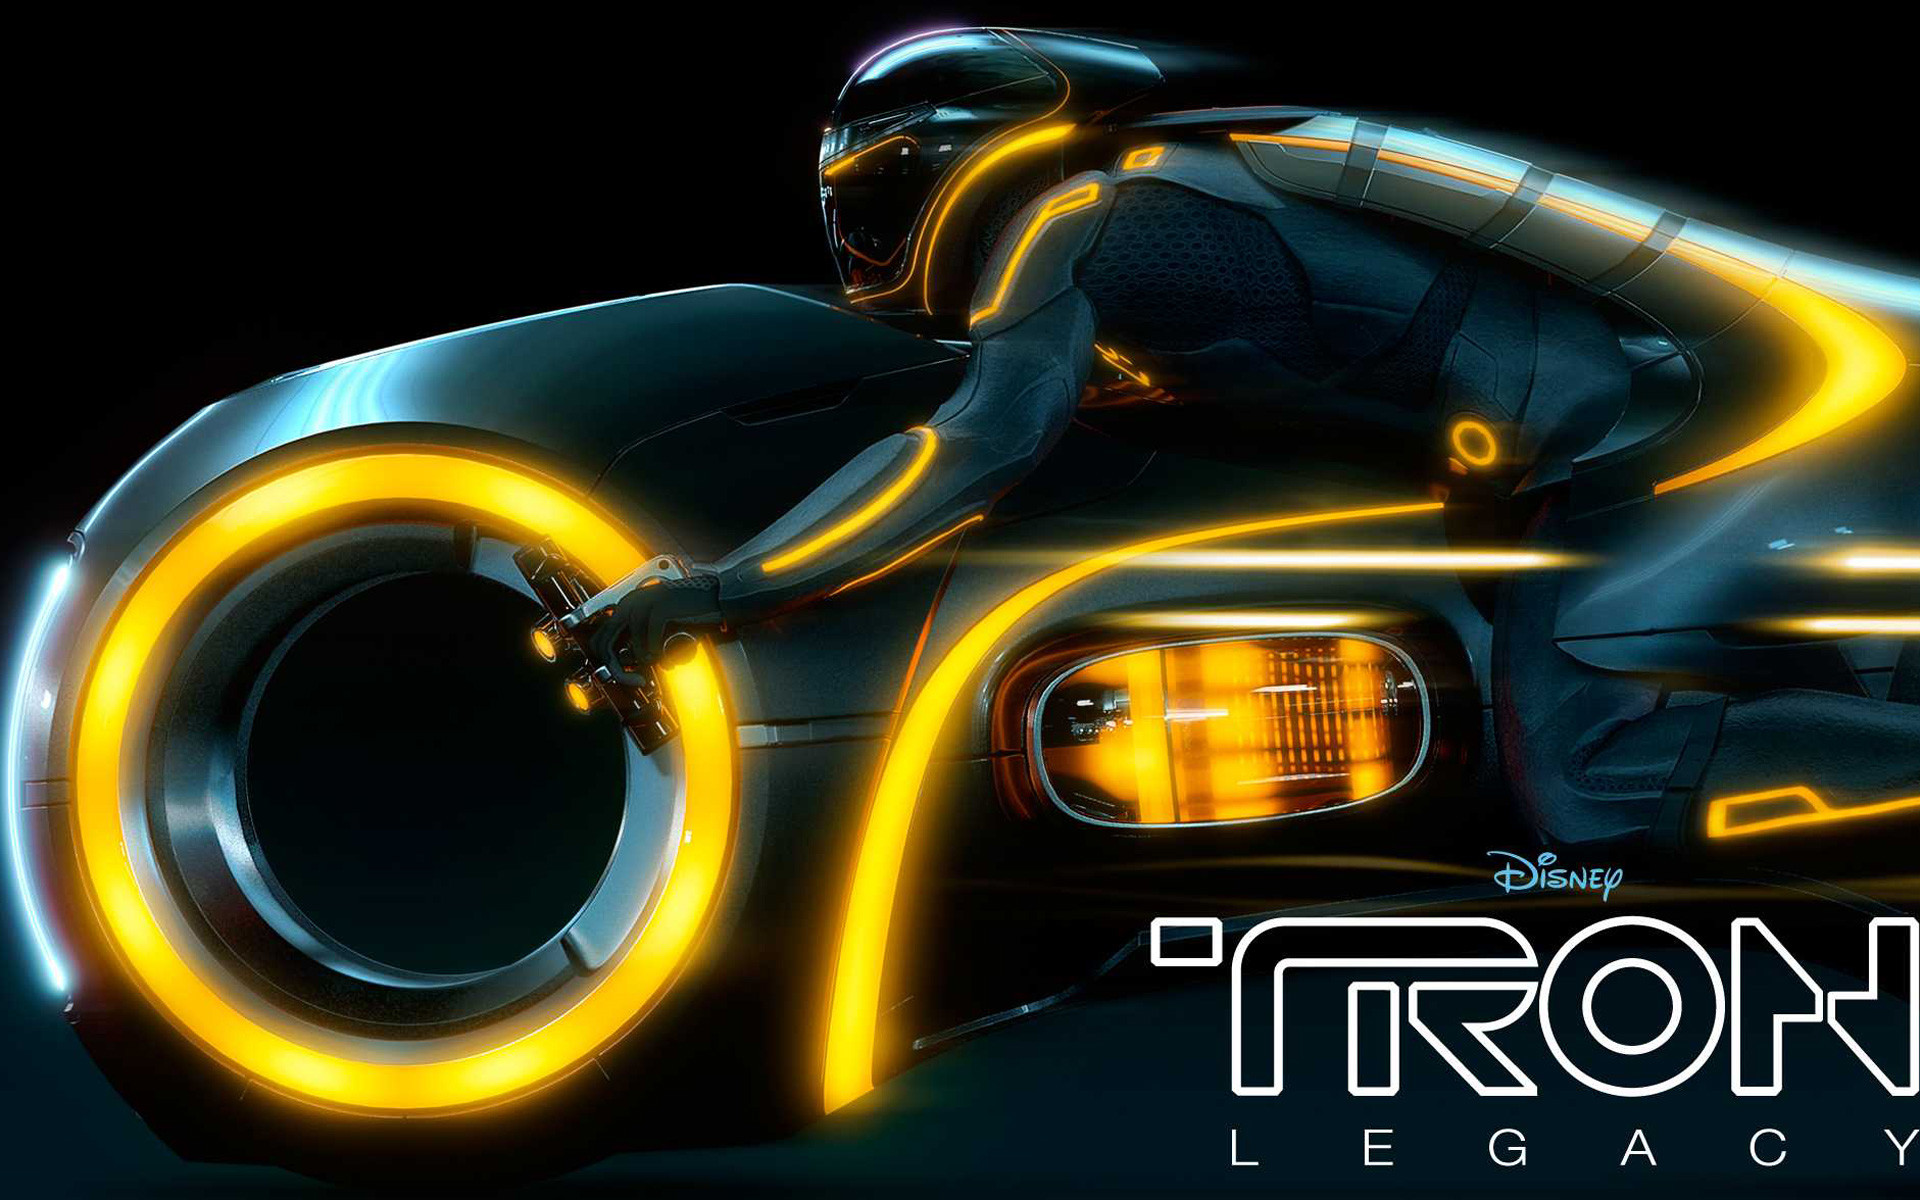 1920x1200 Yellow Light Cycle Disney Tron: Legacy Movie wallpaper - Click picture for  high resolution HD wallpaper